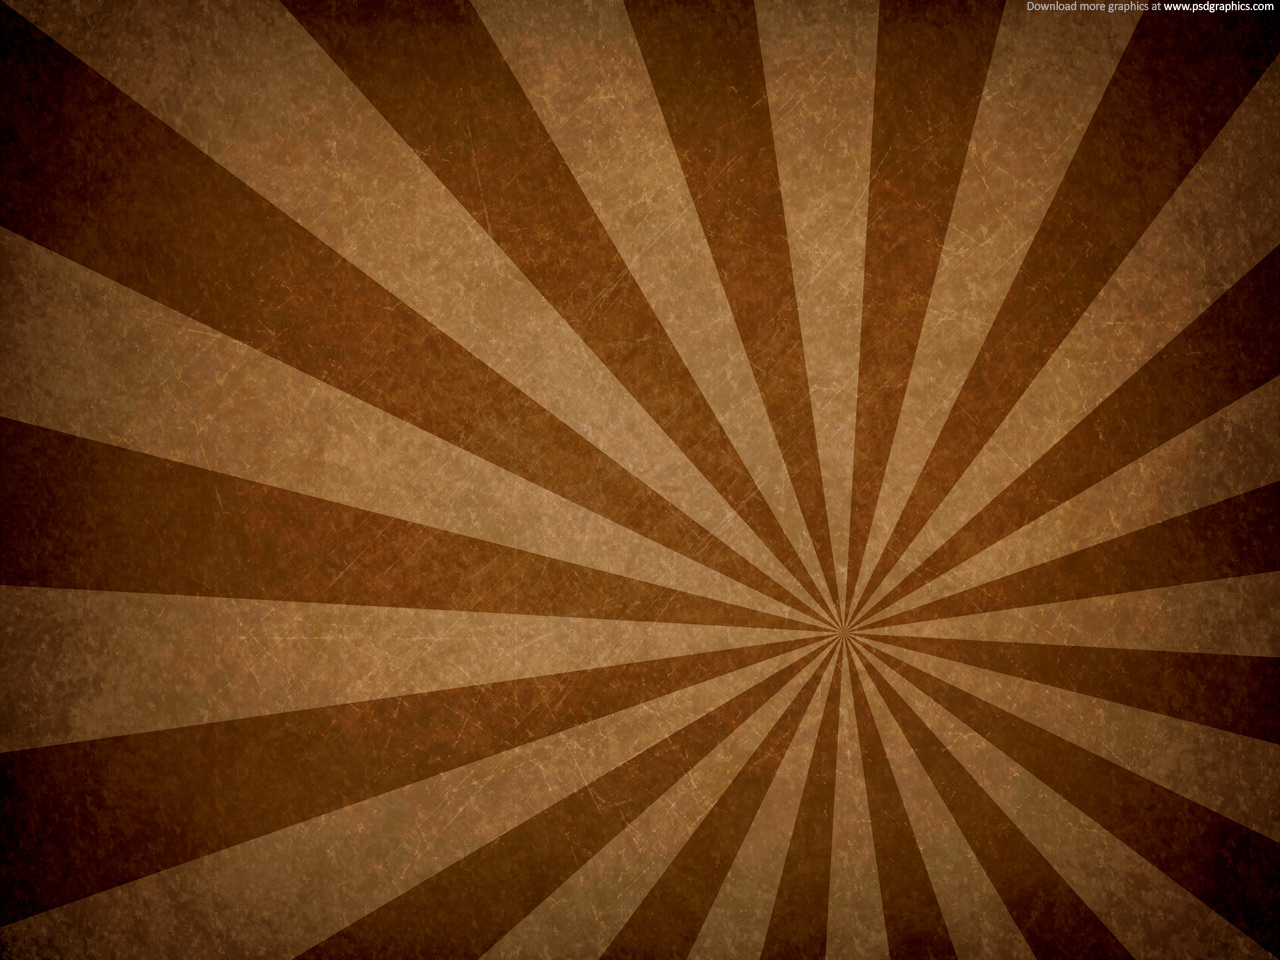 vintage burst background psdgraphics